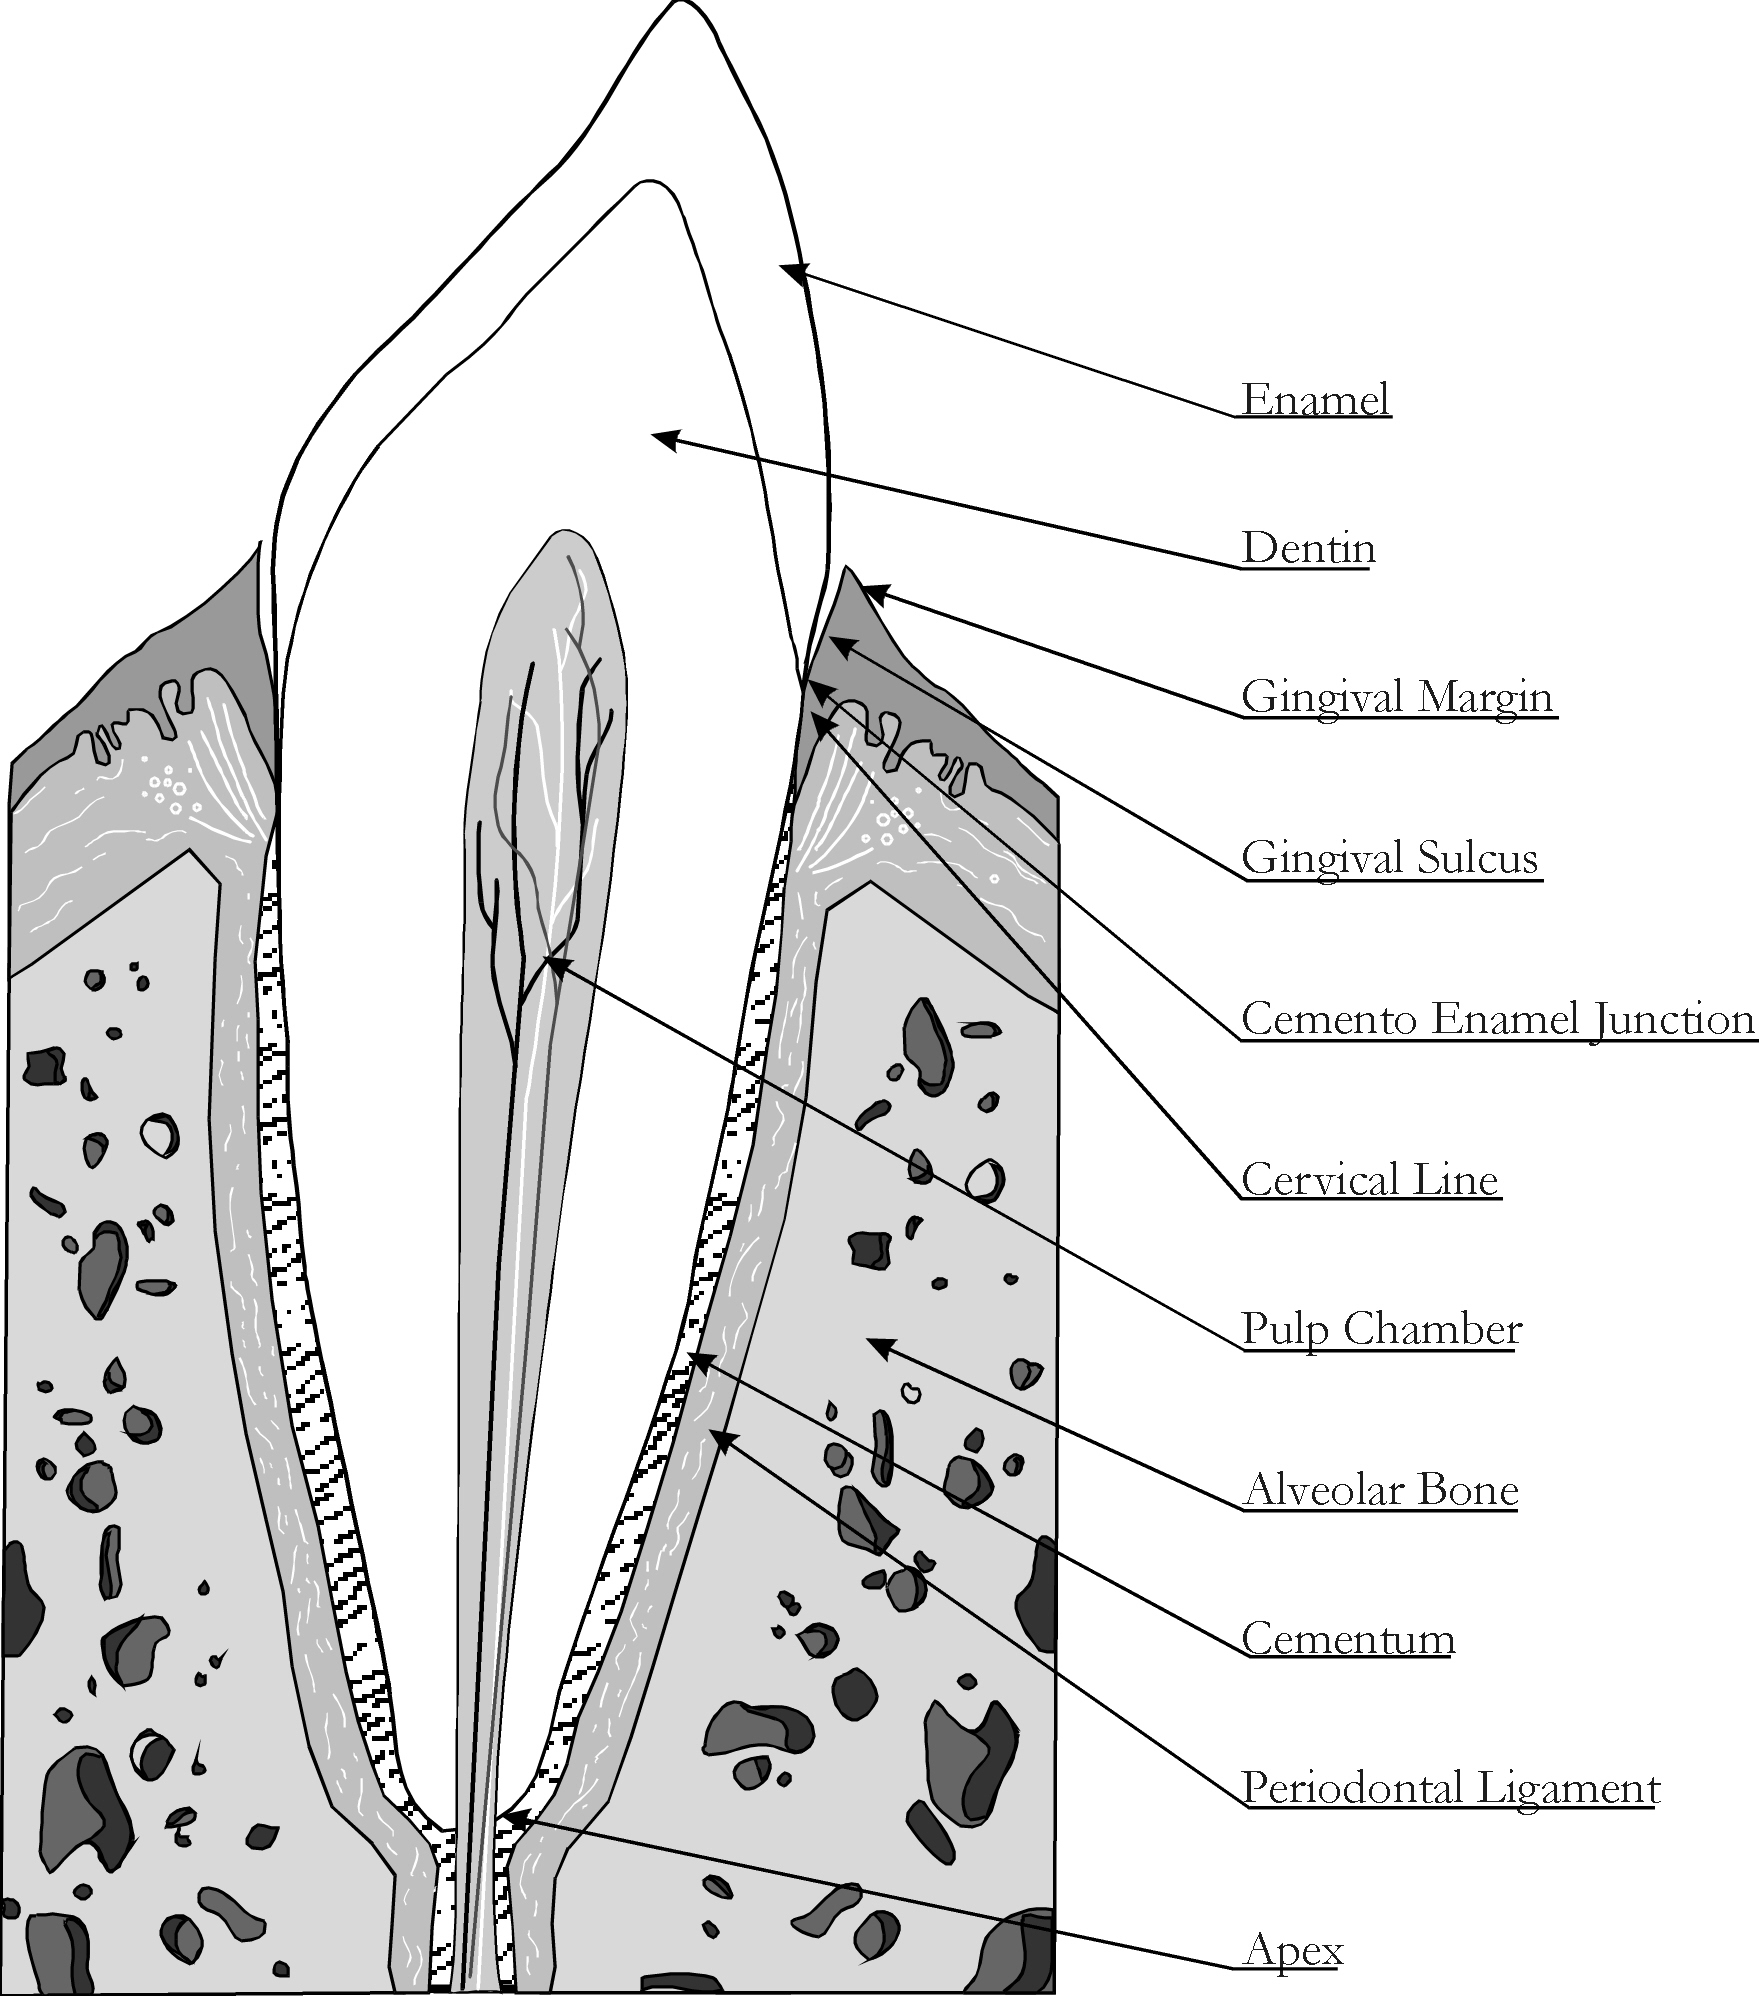 Dental Structure Anatomy of Dogs | Safari Veterinary in League City, TX